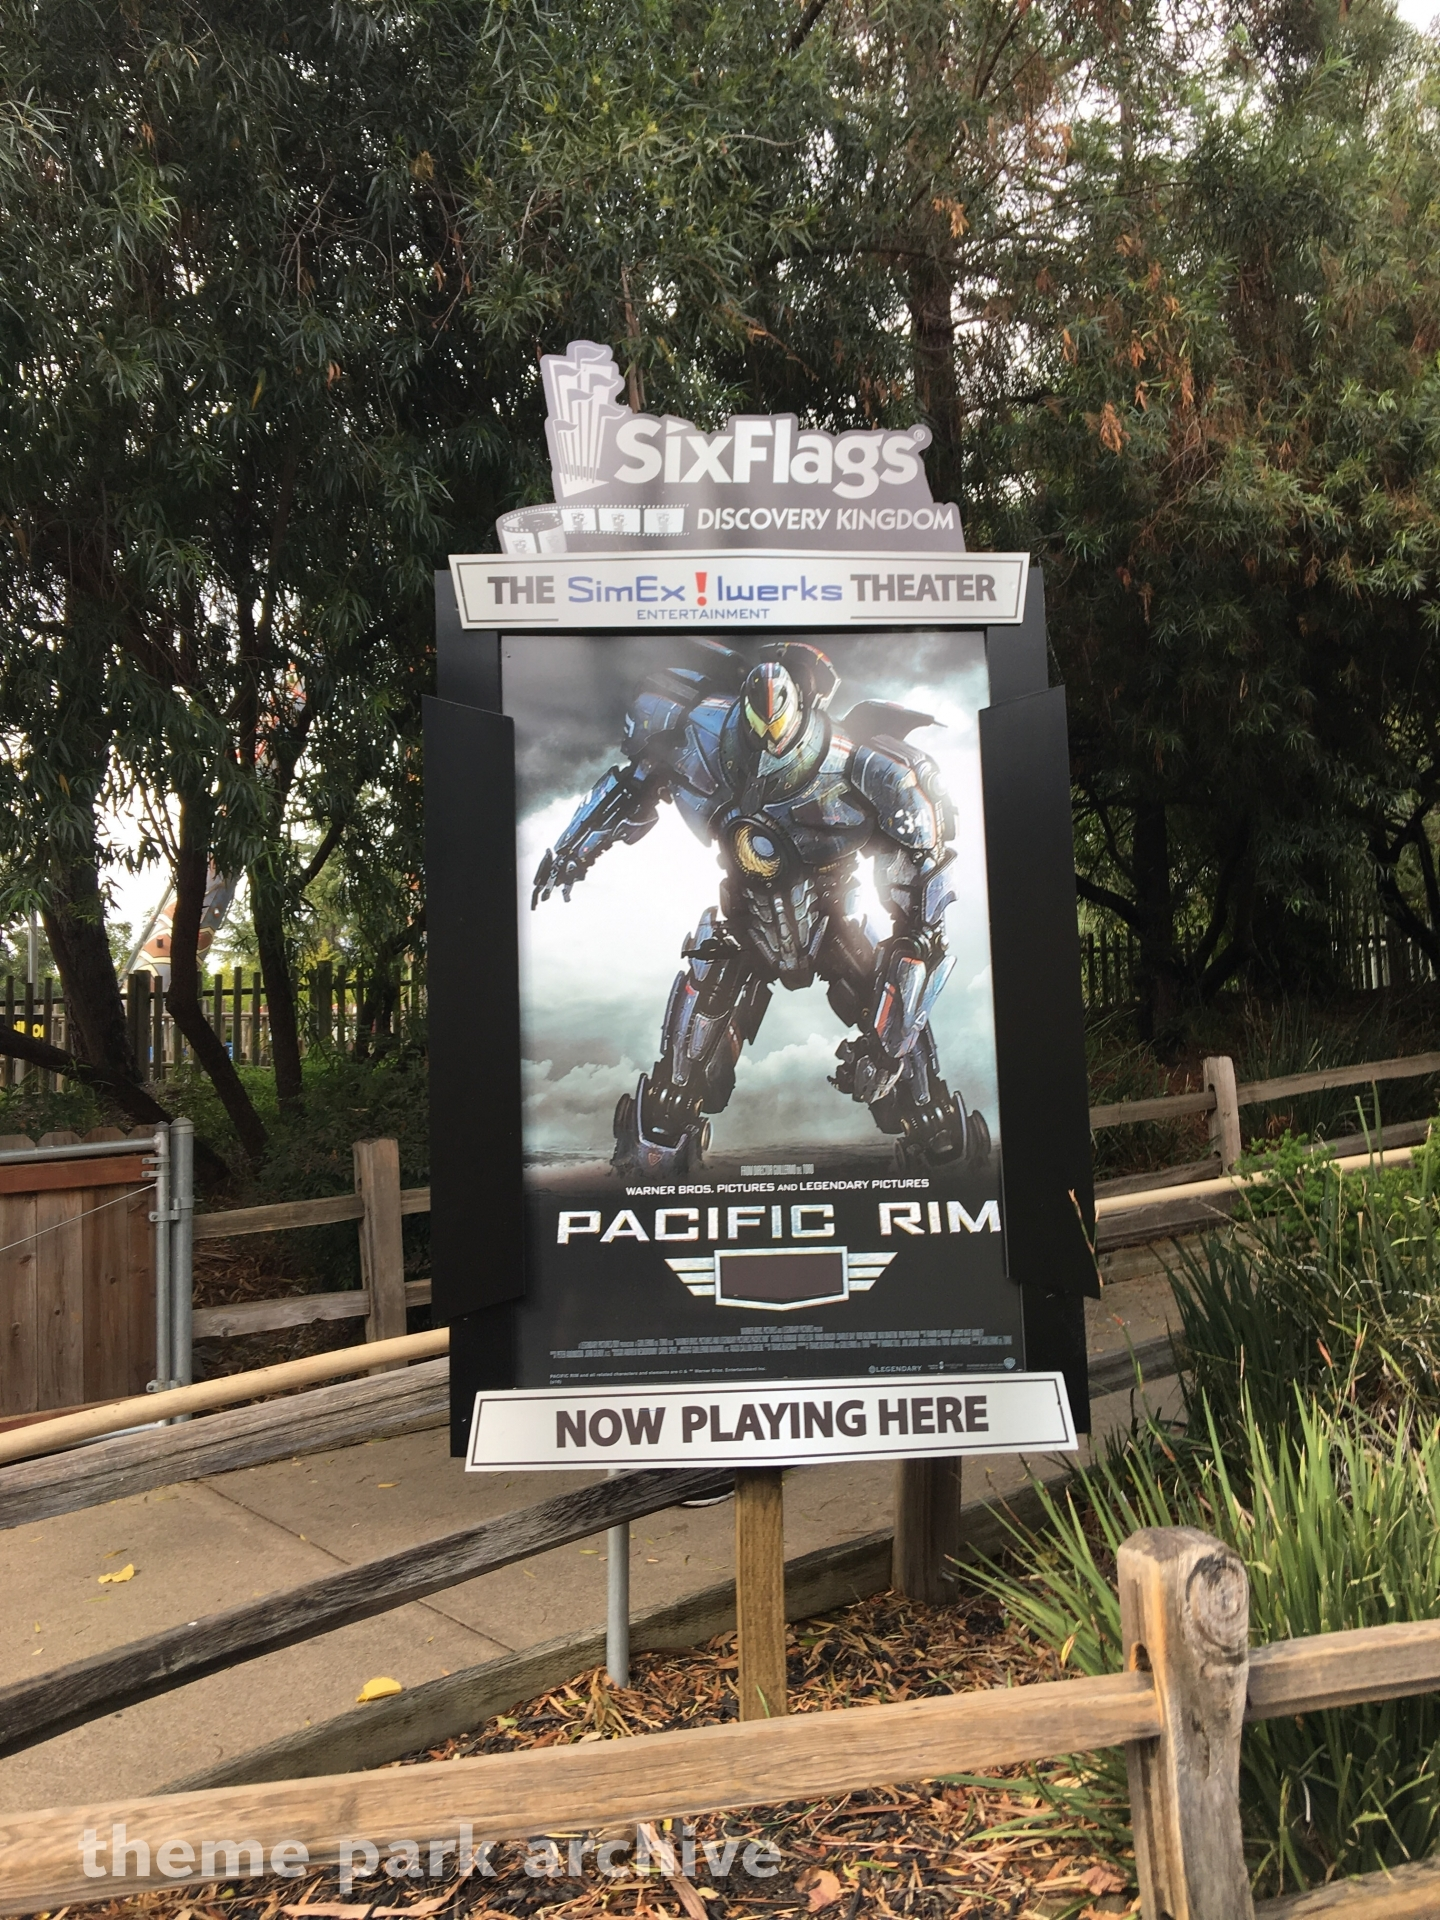 Pacific Rim at Six Flags Discovery Kingdom